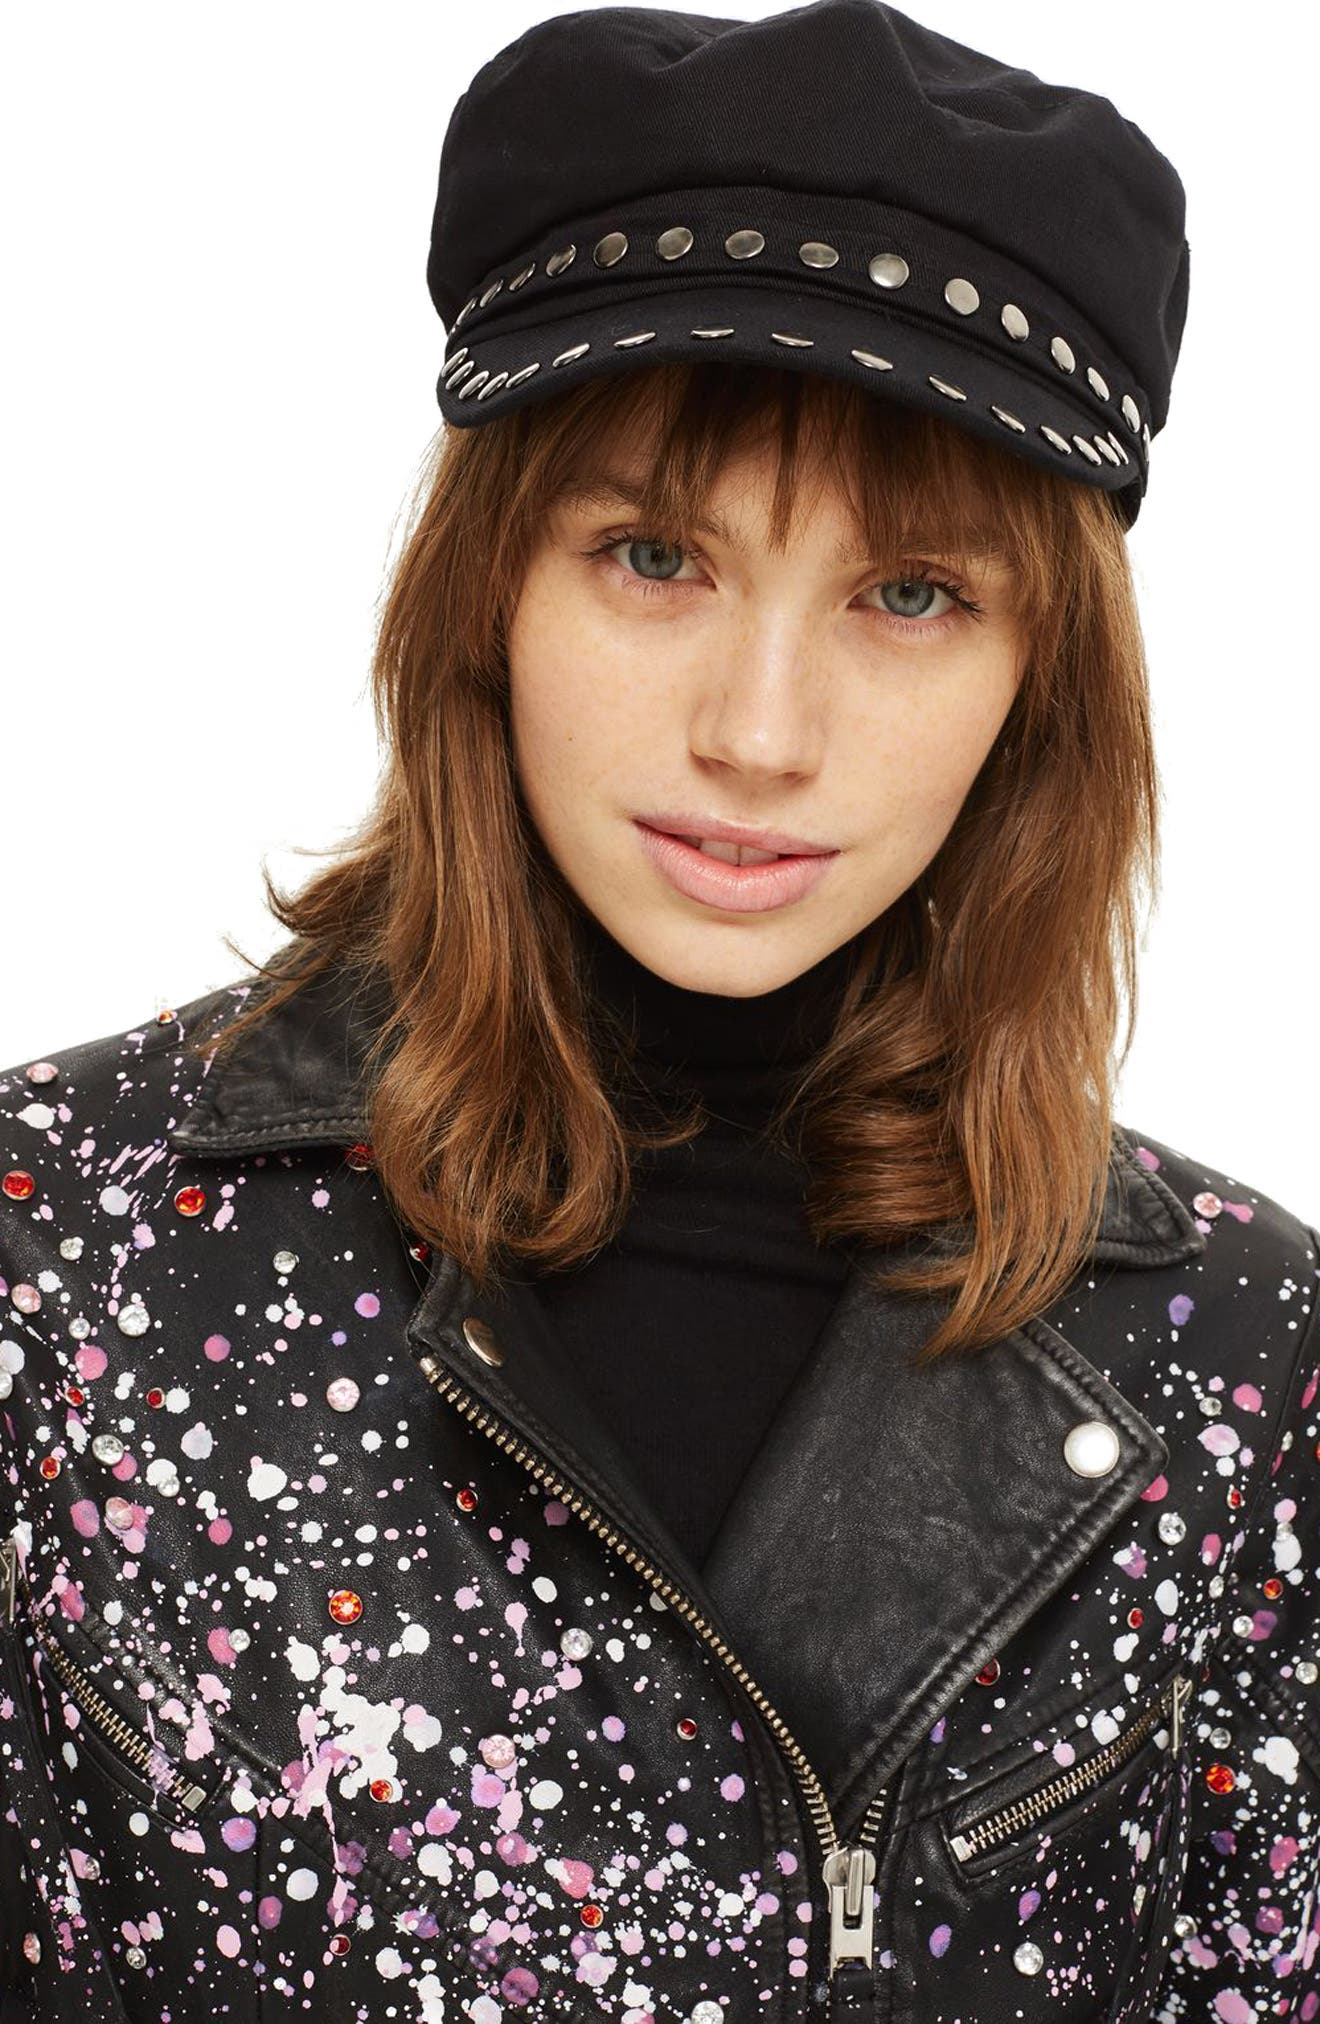 Studded Baker Boy Cap,                             Alternate thumbnail 2, color,                             Black Multi